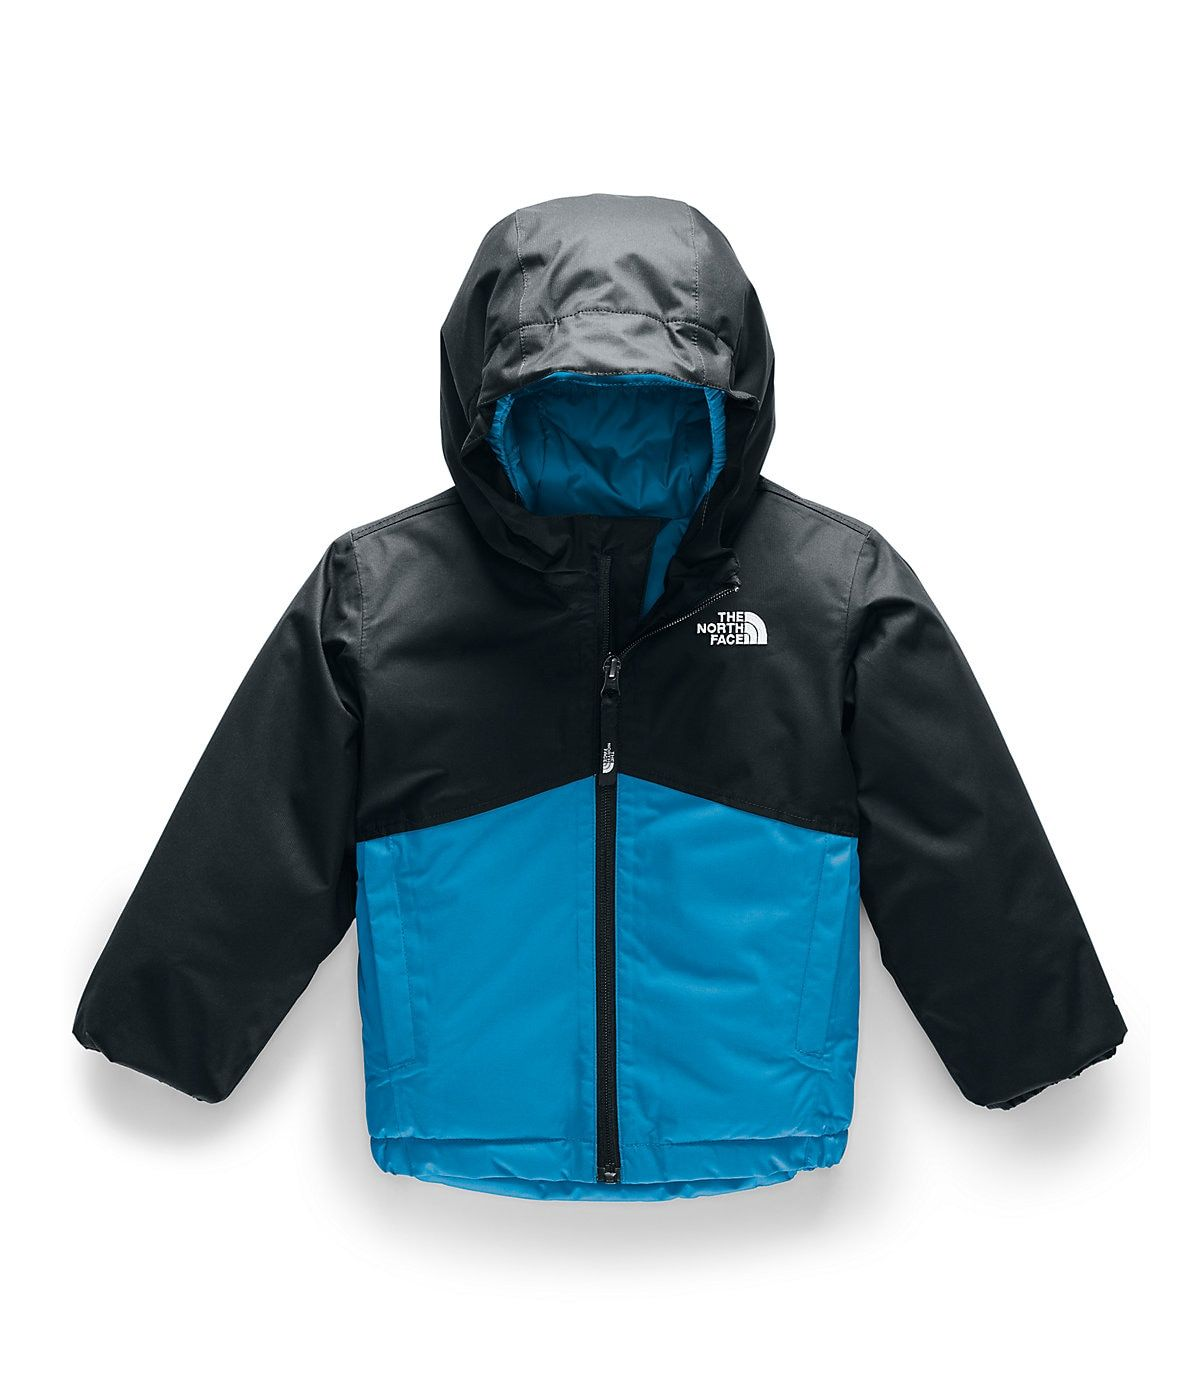 Toddler Snowquest Insulated Jacket North Face Jacket